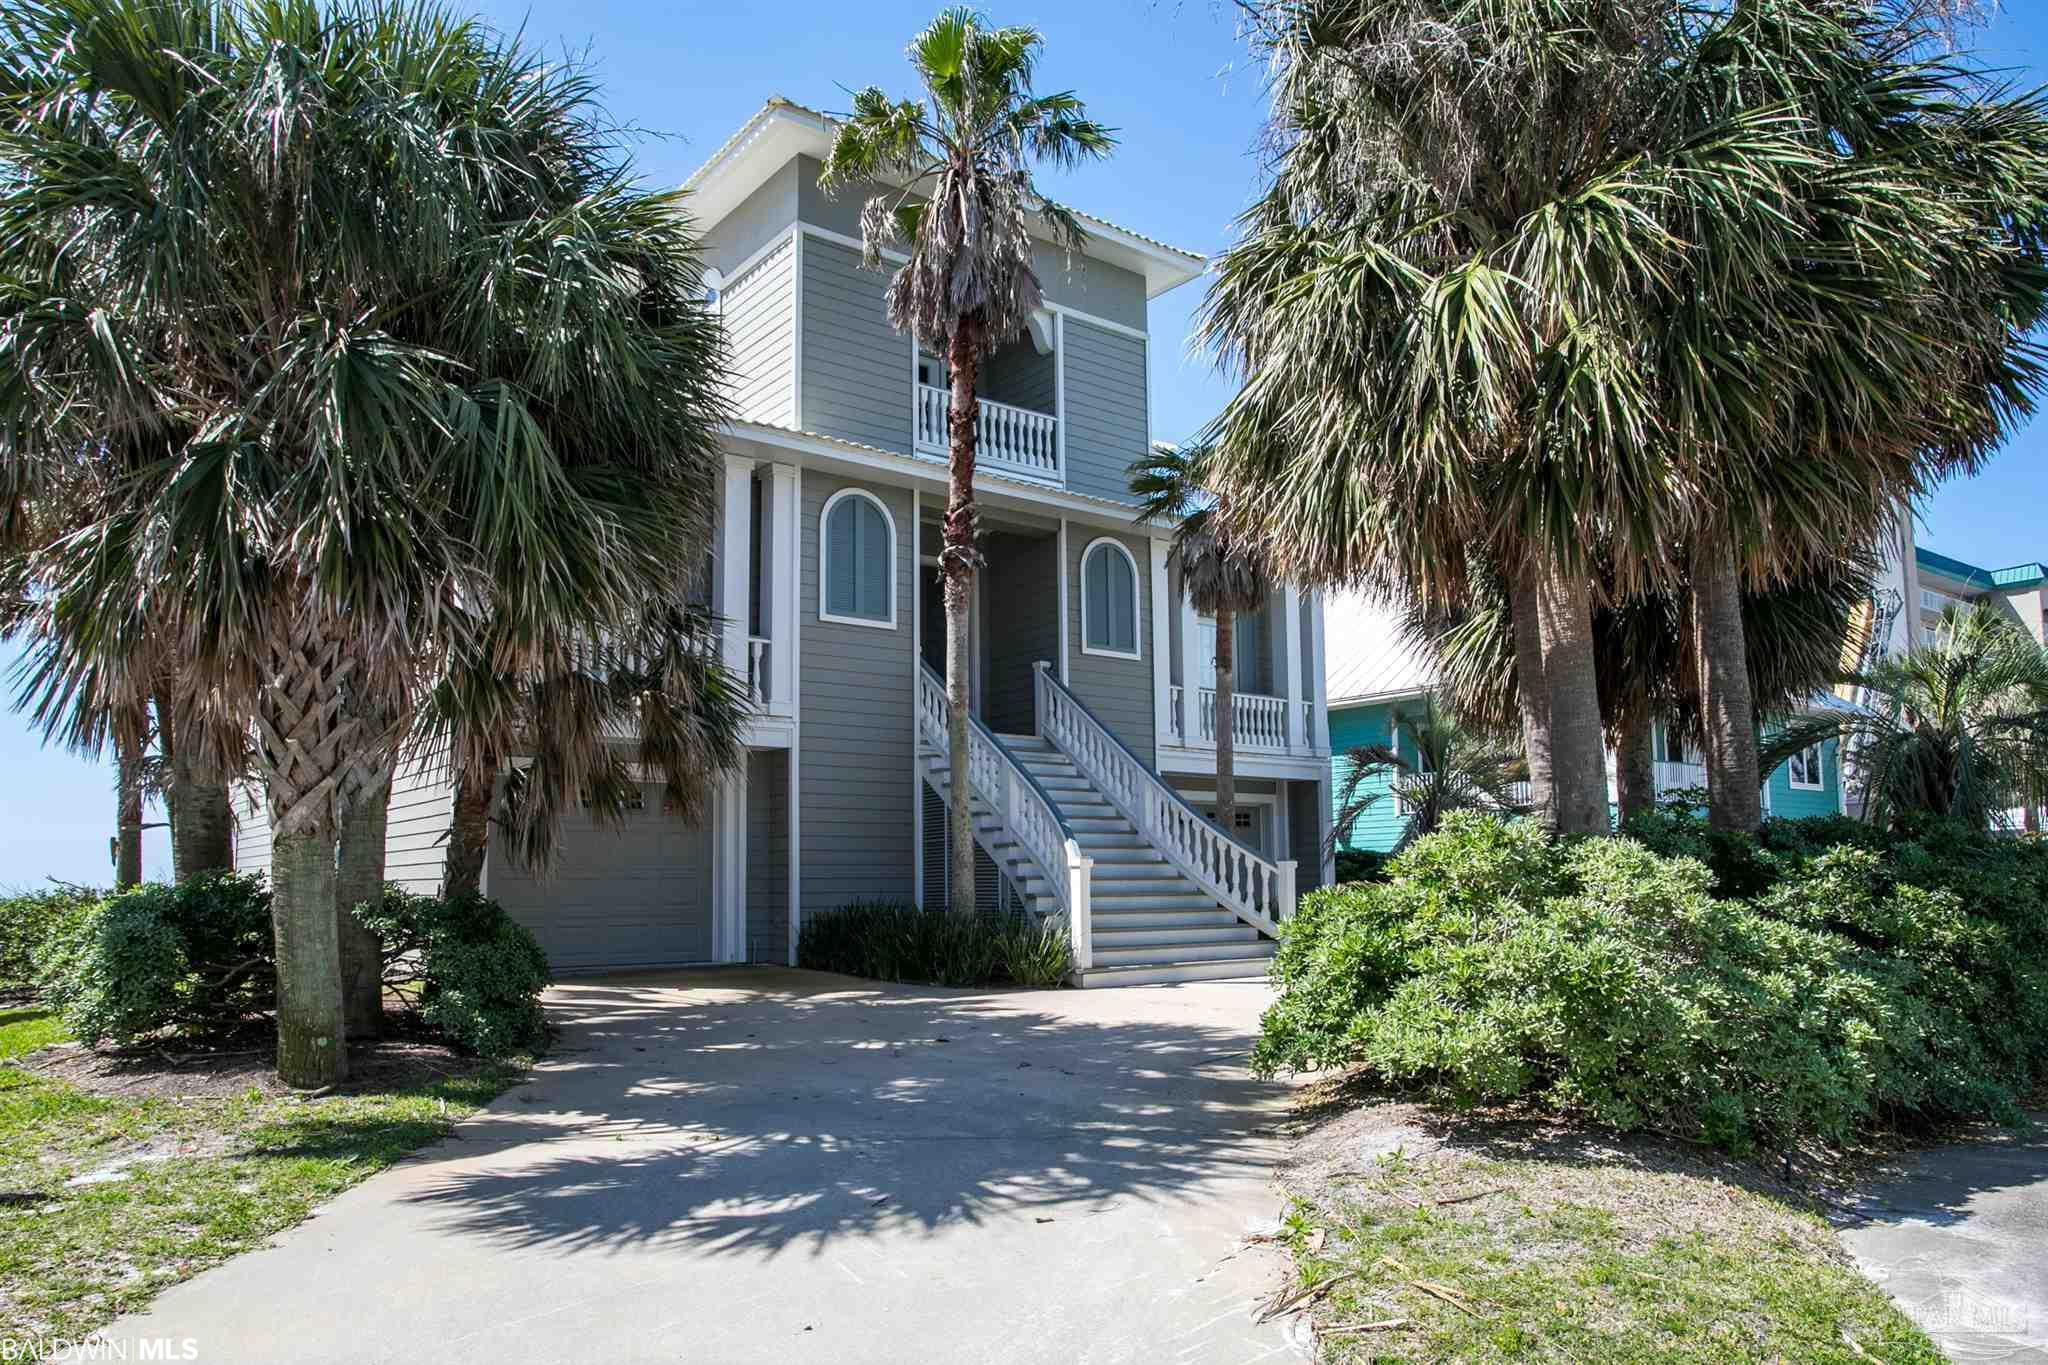 RARE OPPORTUNITY FOR PRIVATE BEACHFRONT LIVING IN THE HEART OF PERDIDO KEY! Parasol is a secure, gated gulf-front community that encompasses 900'+ of sugar white sand beaches and just a short walk to Johnson Beach and the National Seashore! This coastal charmer sits on 75' of beachfront and boasts 5 bedrooms, 5.5 baths on 3 floors with a custom elevator servicing all levels. The 1,400+ sq.ft. outdoor dining and relaxation areas with deep covered porches allow for maximum privacy and unobstructed gulf-views! The open main living level is perfect for entertaining with views from every room, featuring hardwood floors, 10ft ceilings, and an abundance of natural light! The living room is complete with wet bar, wine cooler, and ice maker! The kitchen exudes elegance with granite countertops, stainless steel appliances, 2 Bosch side by side ovens, dishwasher, Viking 5 burner stove, commercial grade exhaust accentuated by stunning mantle and tumble marbled detailing, Rohl nickel faucets, 8' wide custom pantry, oversized granite island with prep sink, and bar seating which allows guests to join the kitchen experience. Tucked behind the kitchen is a quiet nook perfect for an office! The main level has a secluded 2nd master suite with en-suite bathroom tucked away for extra privacy. The exquisite custom curved staircase leads to a 3rd level living area, 2nd office, master suite and 2 guest suites. Gulf front master suite includes private covered porch, his/hers closets, en-suite bath, steam shower, dual vanities, and luxury spa tub. The 1st Floor family/game room is where all the fun happens after a long day at the beach! Guests and family can enjoy the tv room, kitchenette, large guest bedroom/bath and add'l full bath - leading outside to outdoor covered patio just steps from the sand. Come home to this amazing beach getaway where paradise awaits!